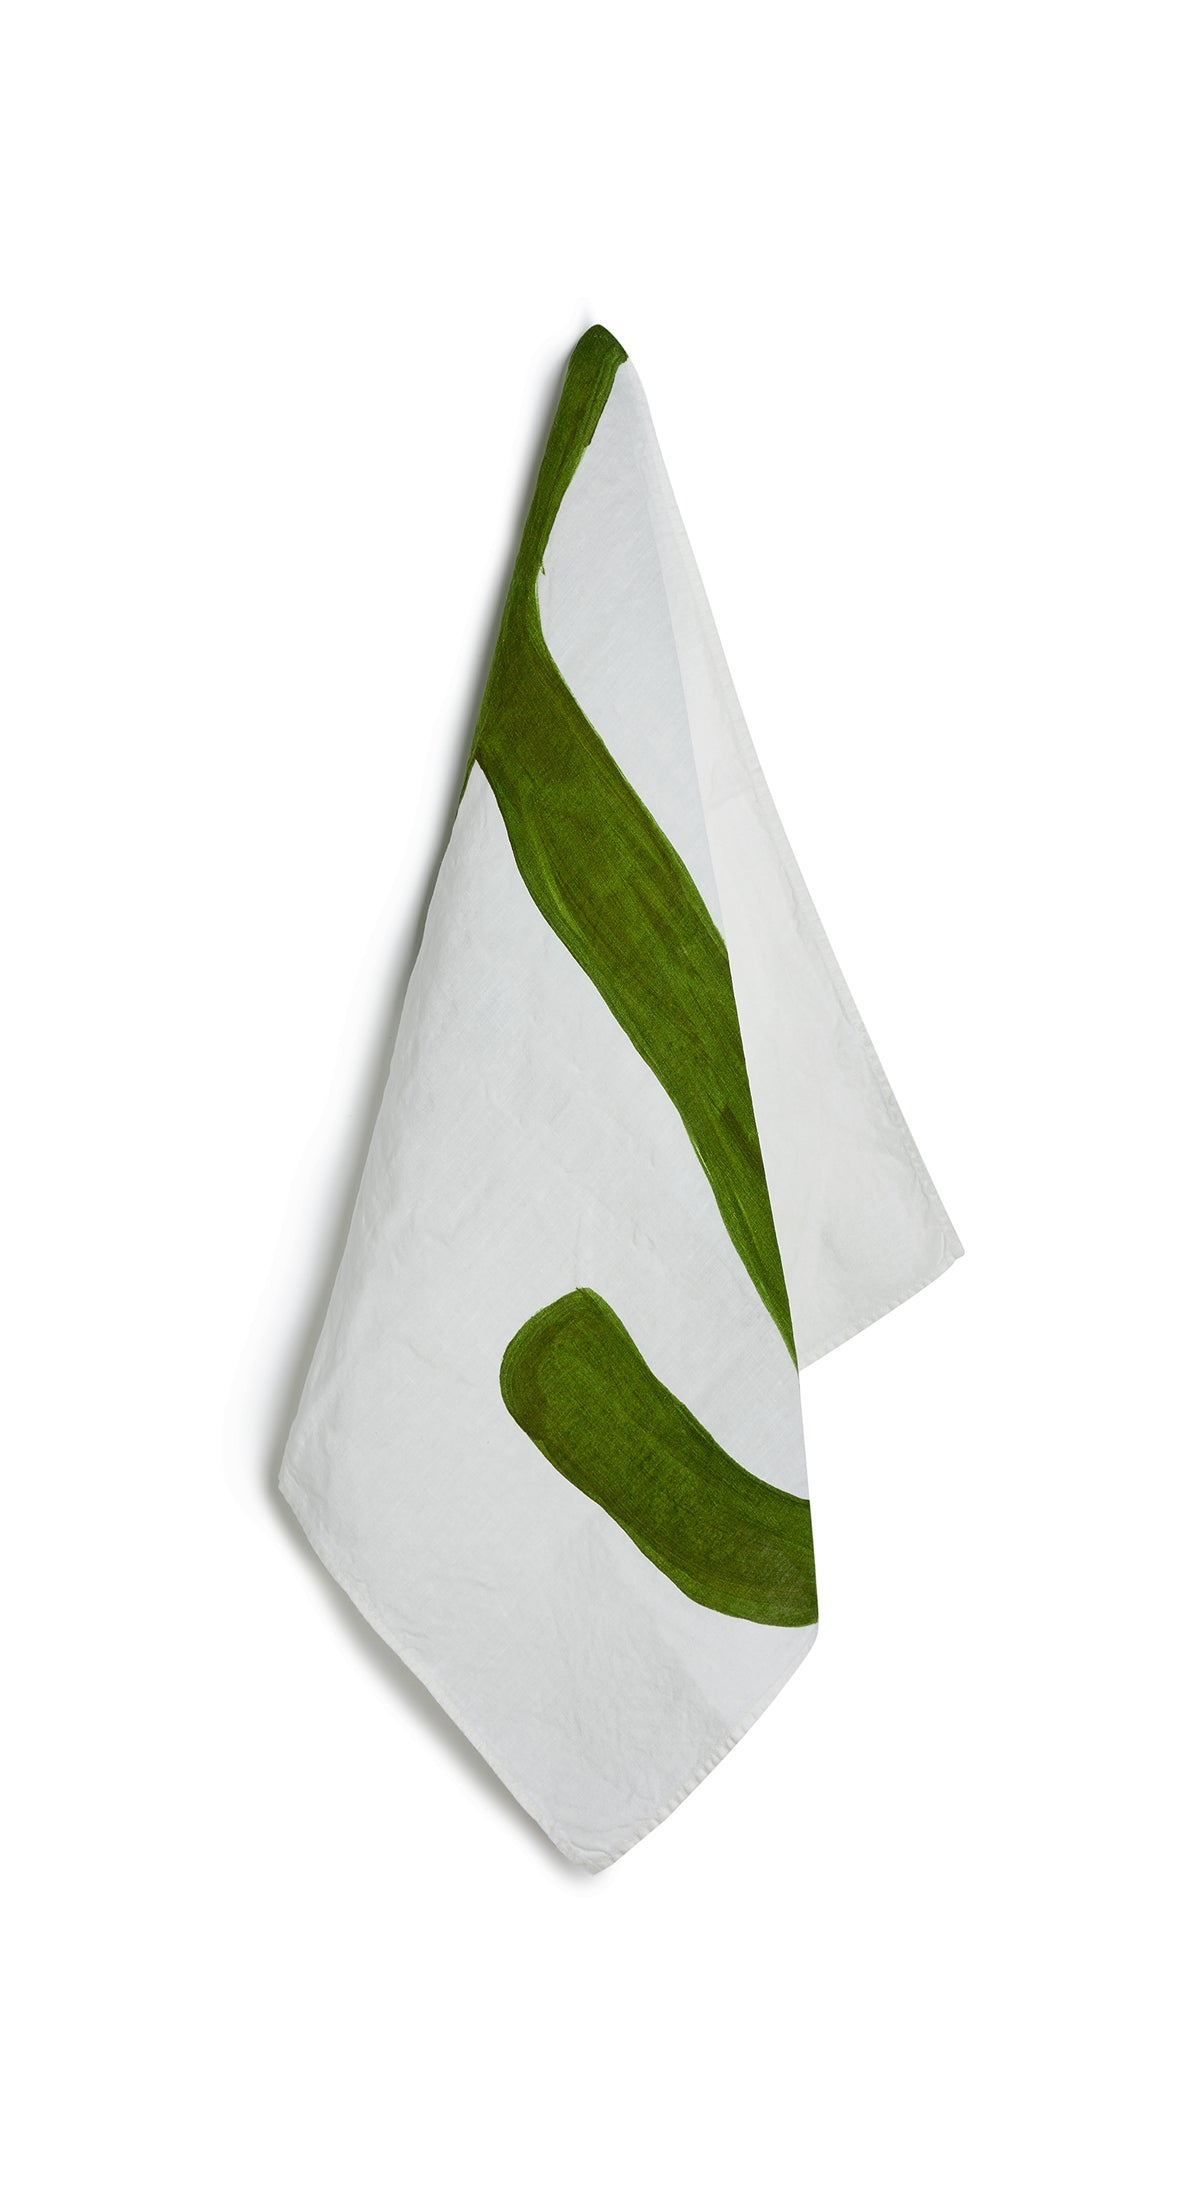 Alphabet Napkin 'J' in Avocado Green